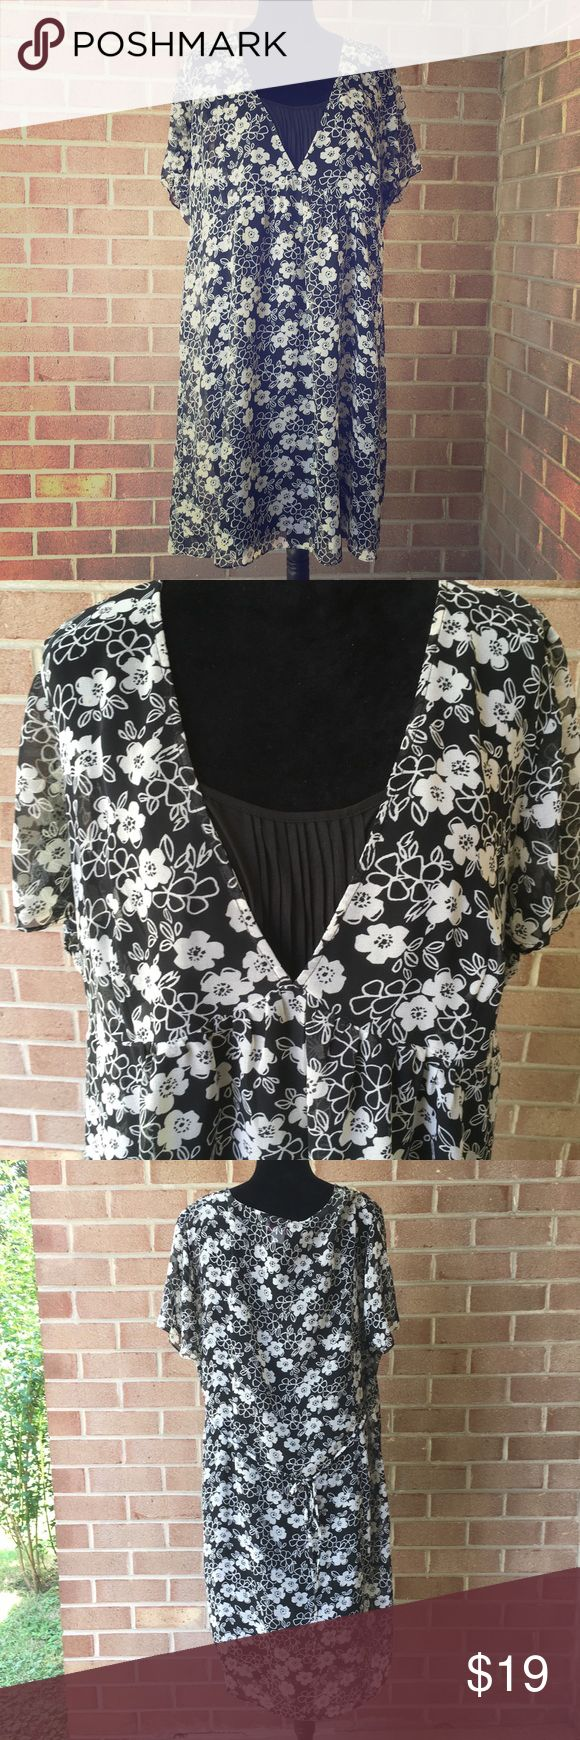 Two Hearts Maternity plus size dress Two Hearts Maternity Dress. Black liner with black with floral print top layer. Ties in the back. Flowers are a greyish cream color. Two Hearts Maternity Dresses